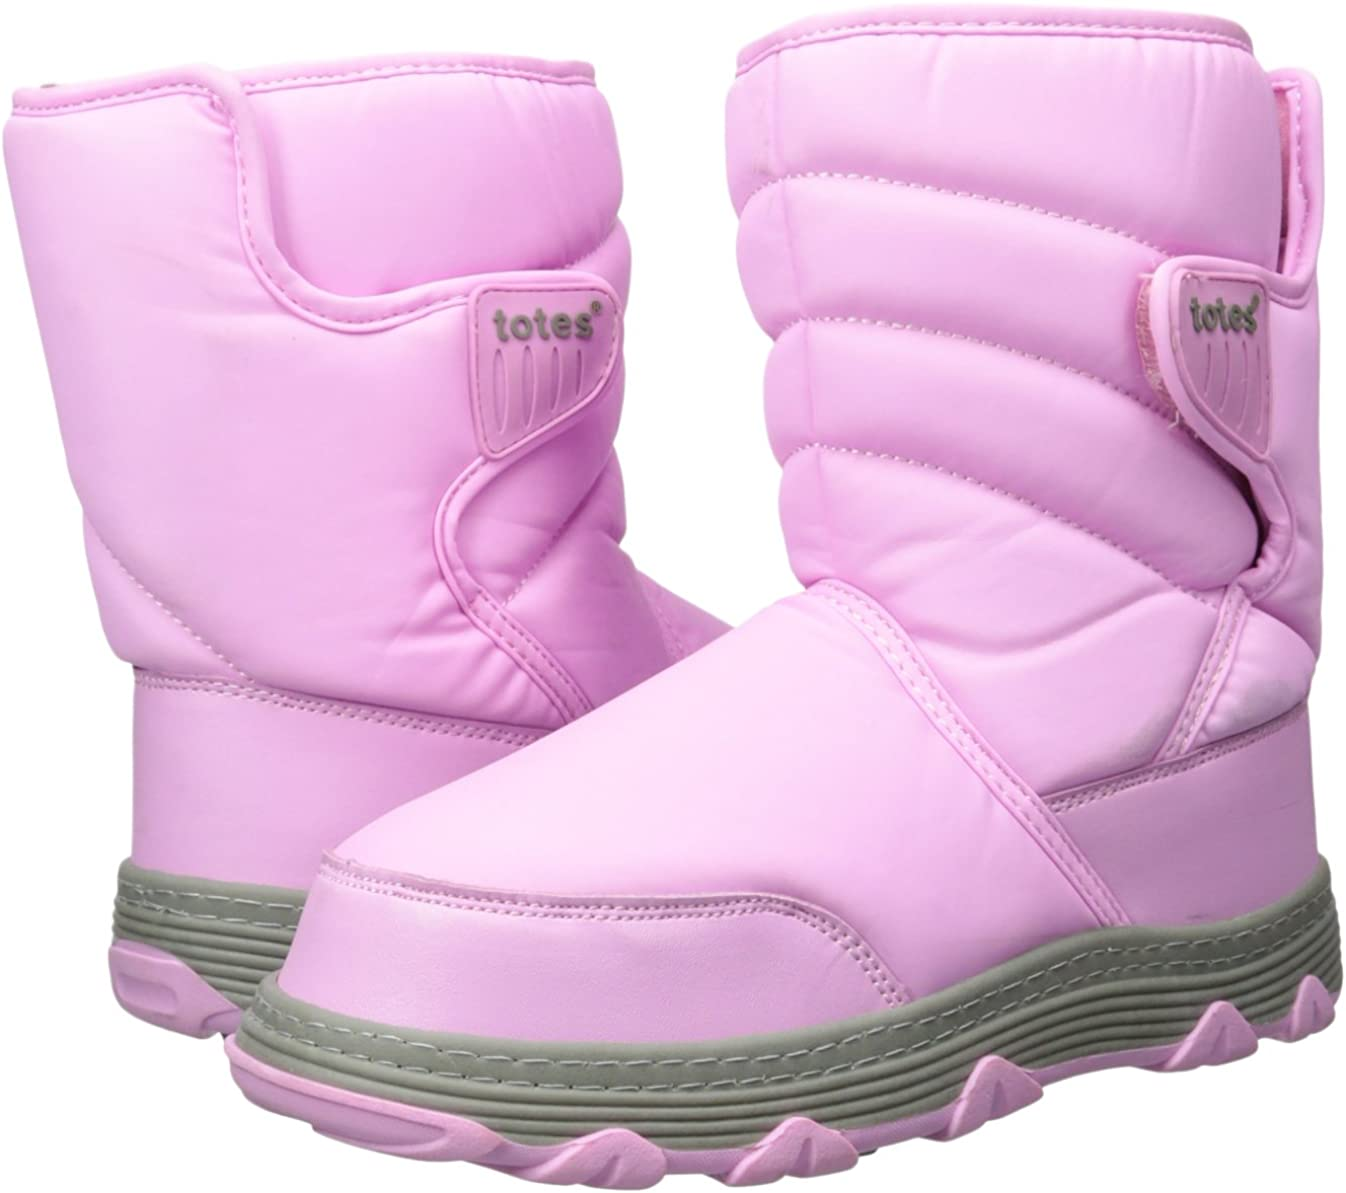 totes Kids Vana Waterproof Snow Boots for Boys and Girls